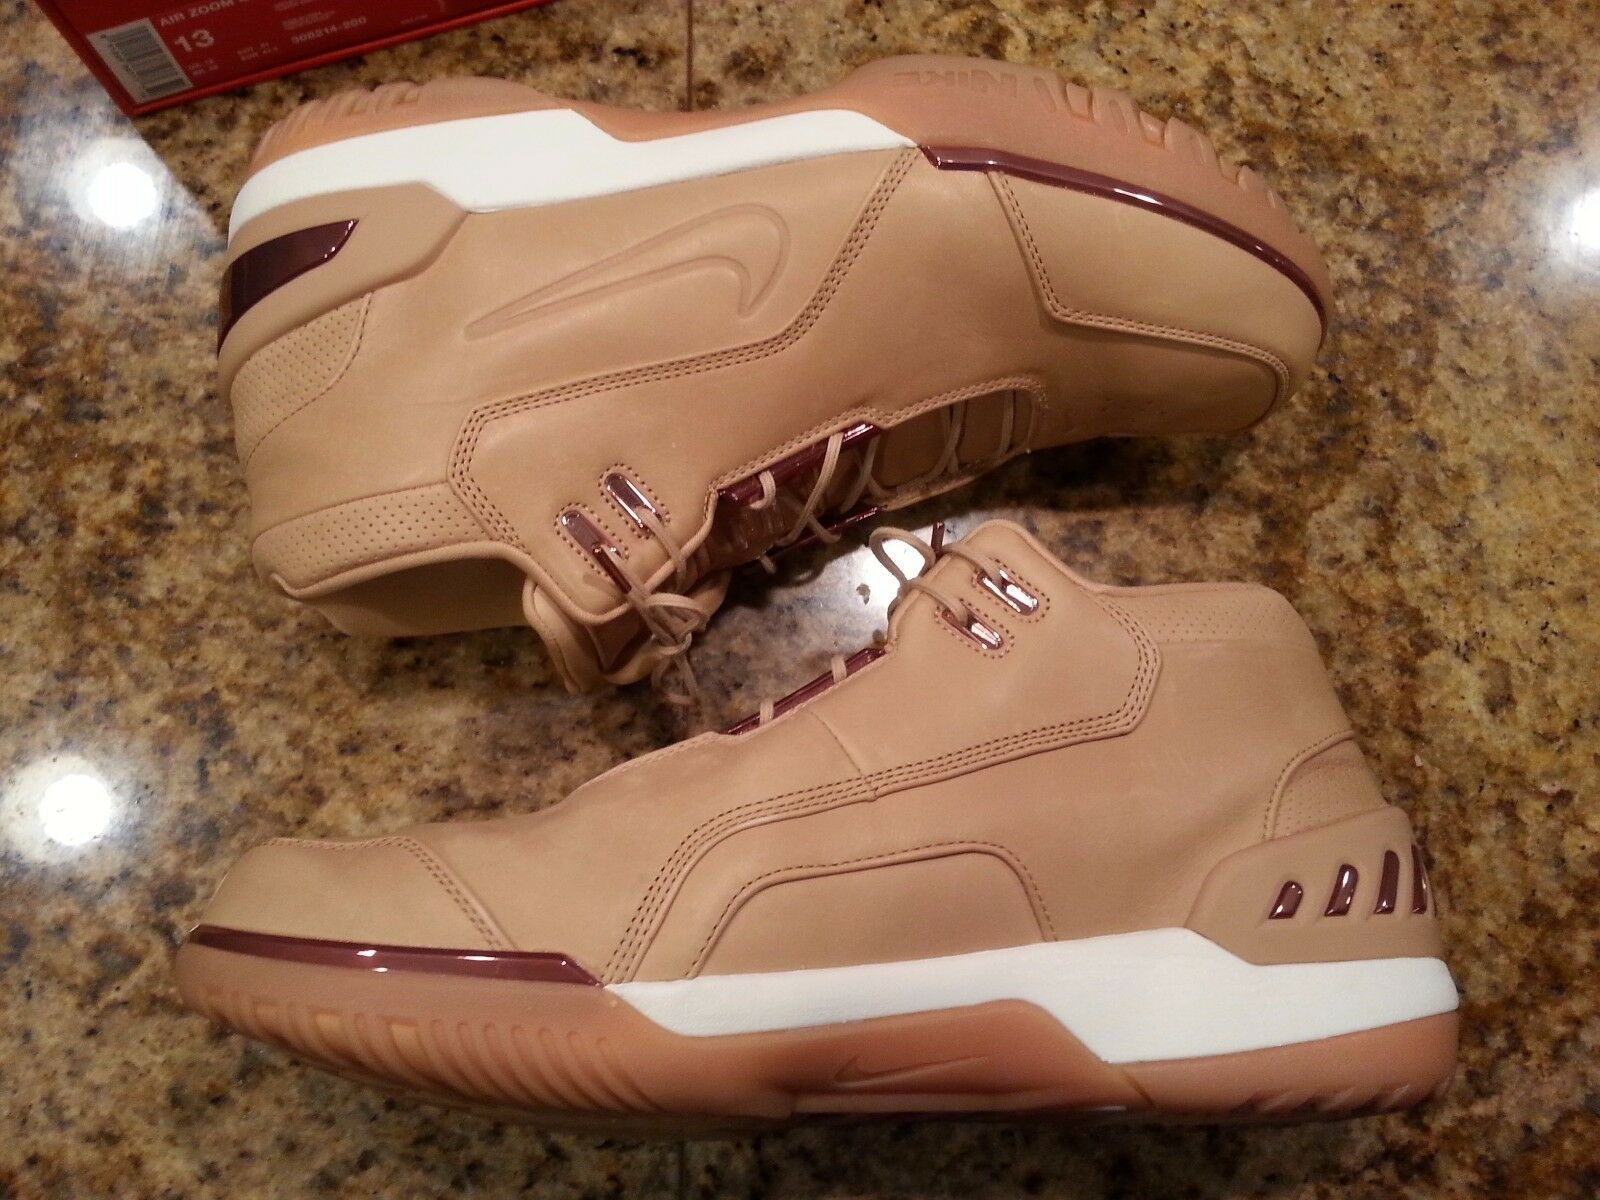 2017 nike air zoom generation qs - tan cavs vachetta größe 13.308214-200 kyrie cavs tan 0e39ad